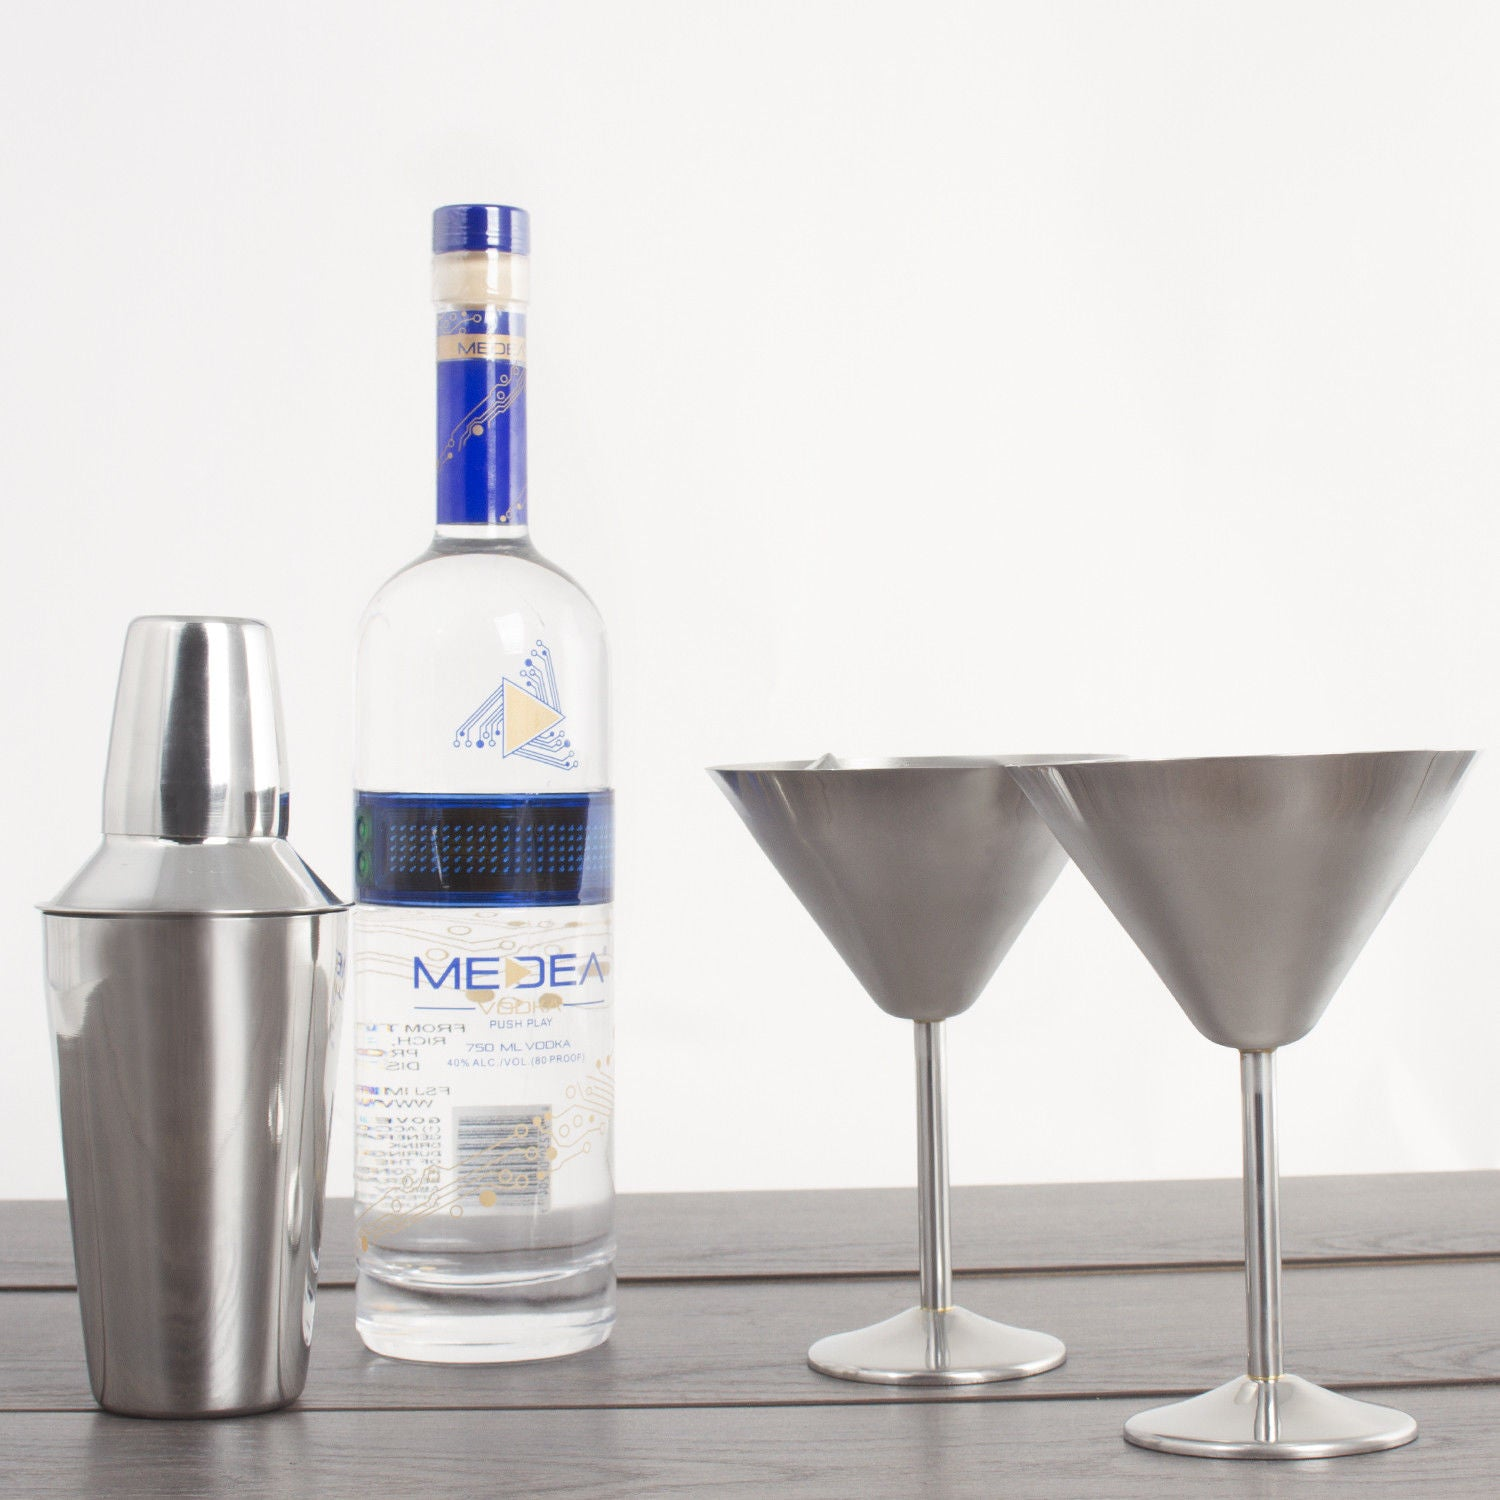 Stainless Steel Martini Gift Set - 2 Large Martini Glasses and Shaker Set